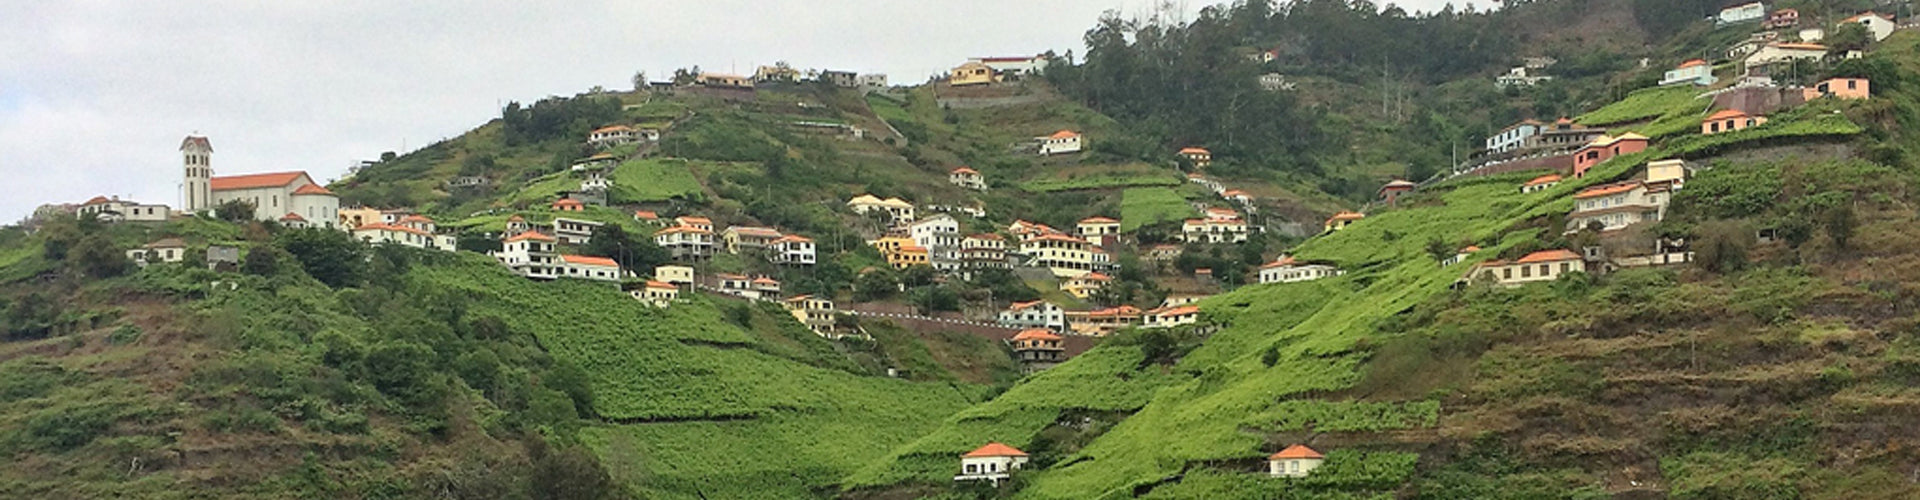 Vineyards perched on the hillsides of Madeira